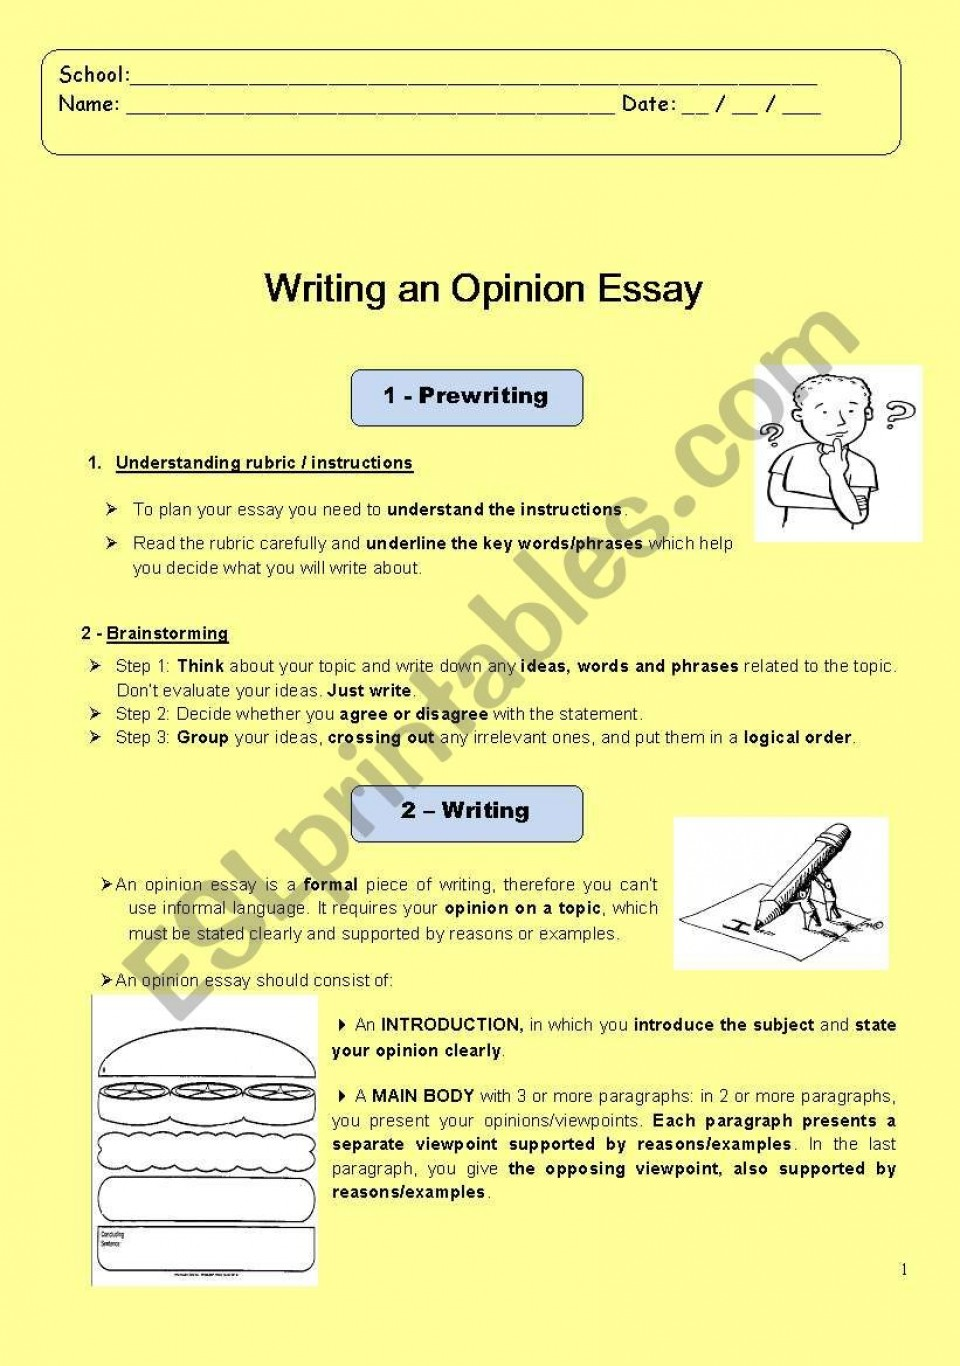 014 How To Write An Opinion Essay 519469 1 Unbelievable Conclusion On A Book Video 960